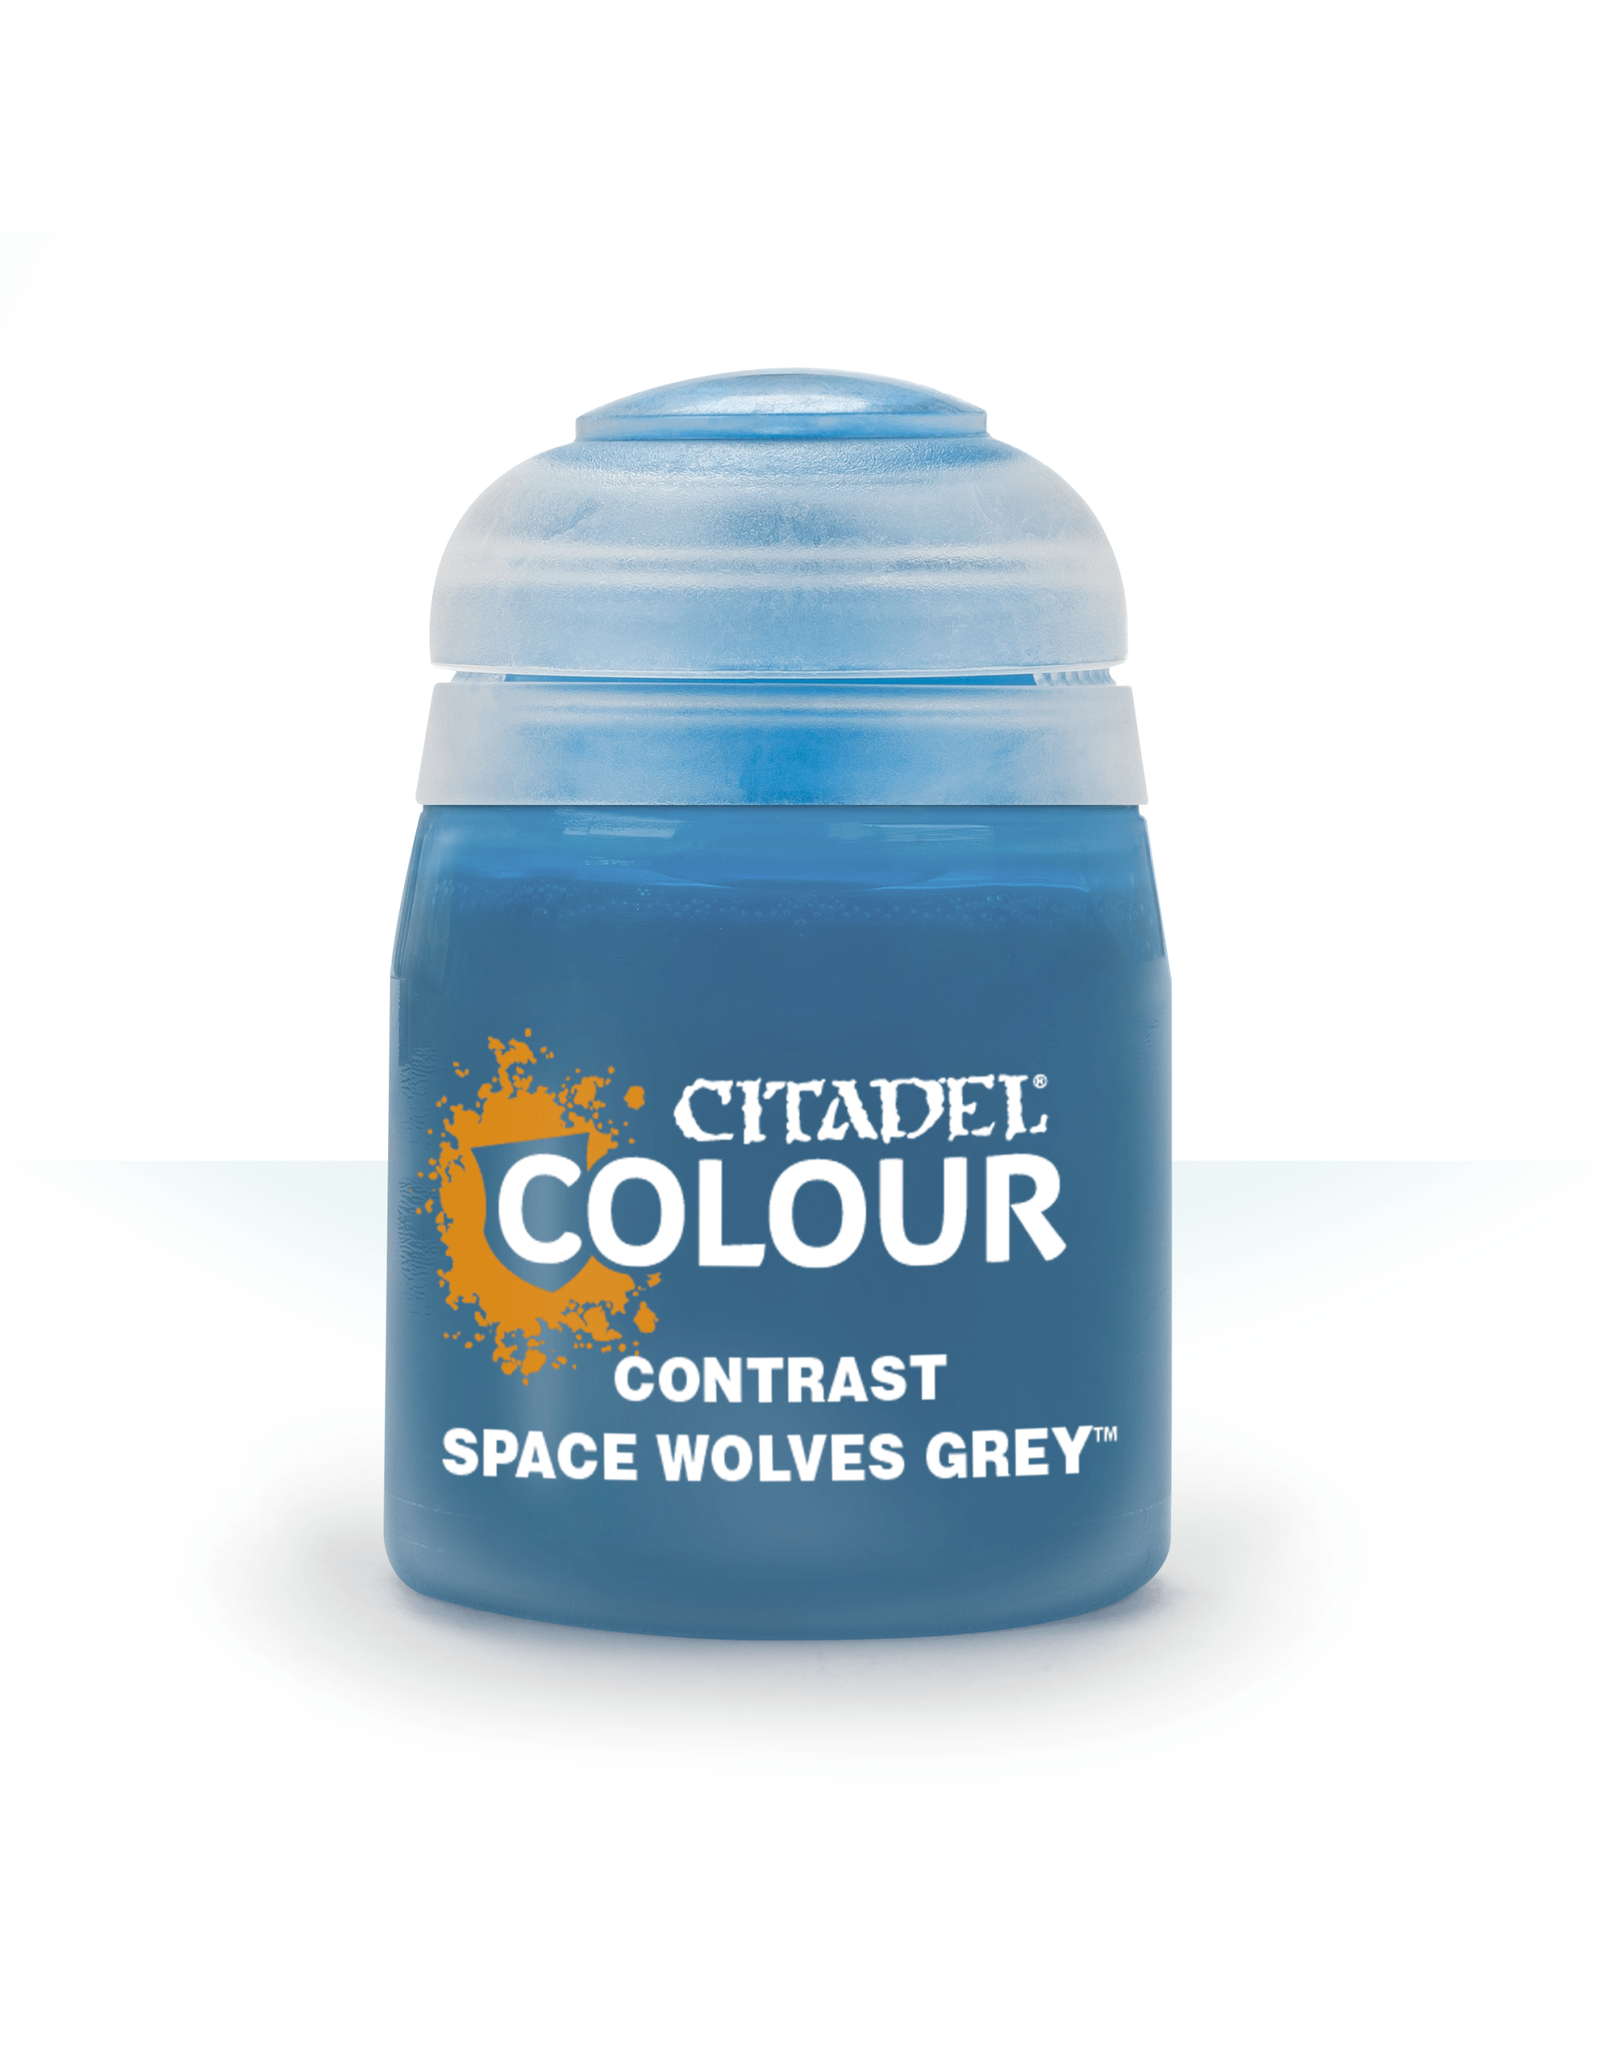 Citadel Space Wolves Grey